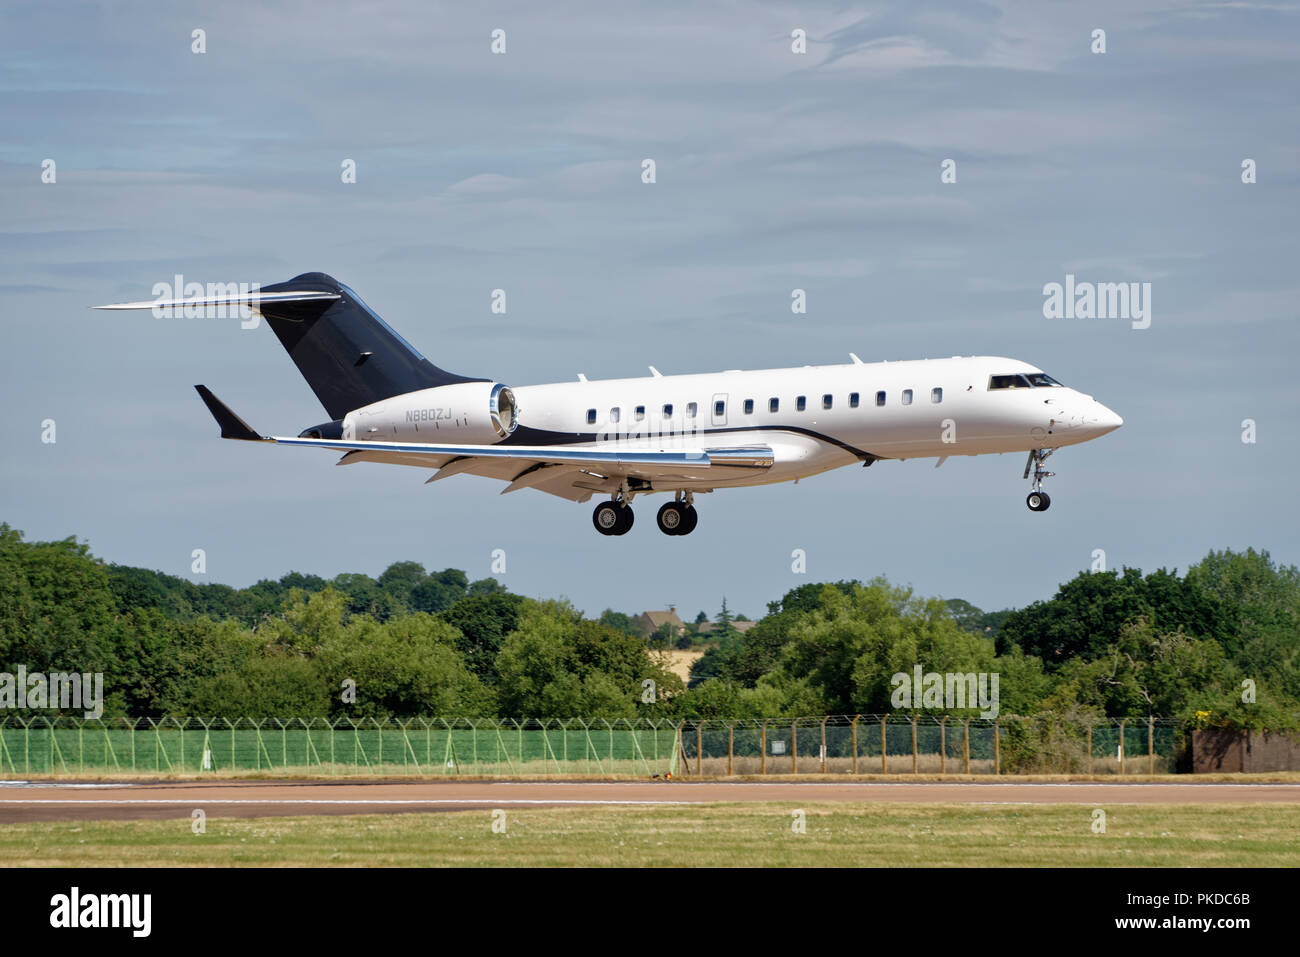 Bombardier BD-700 Global Express Business Jet arrives at RAF Fairford in the English Cotswolds to participate in the RIAT Air Show - Stock Image